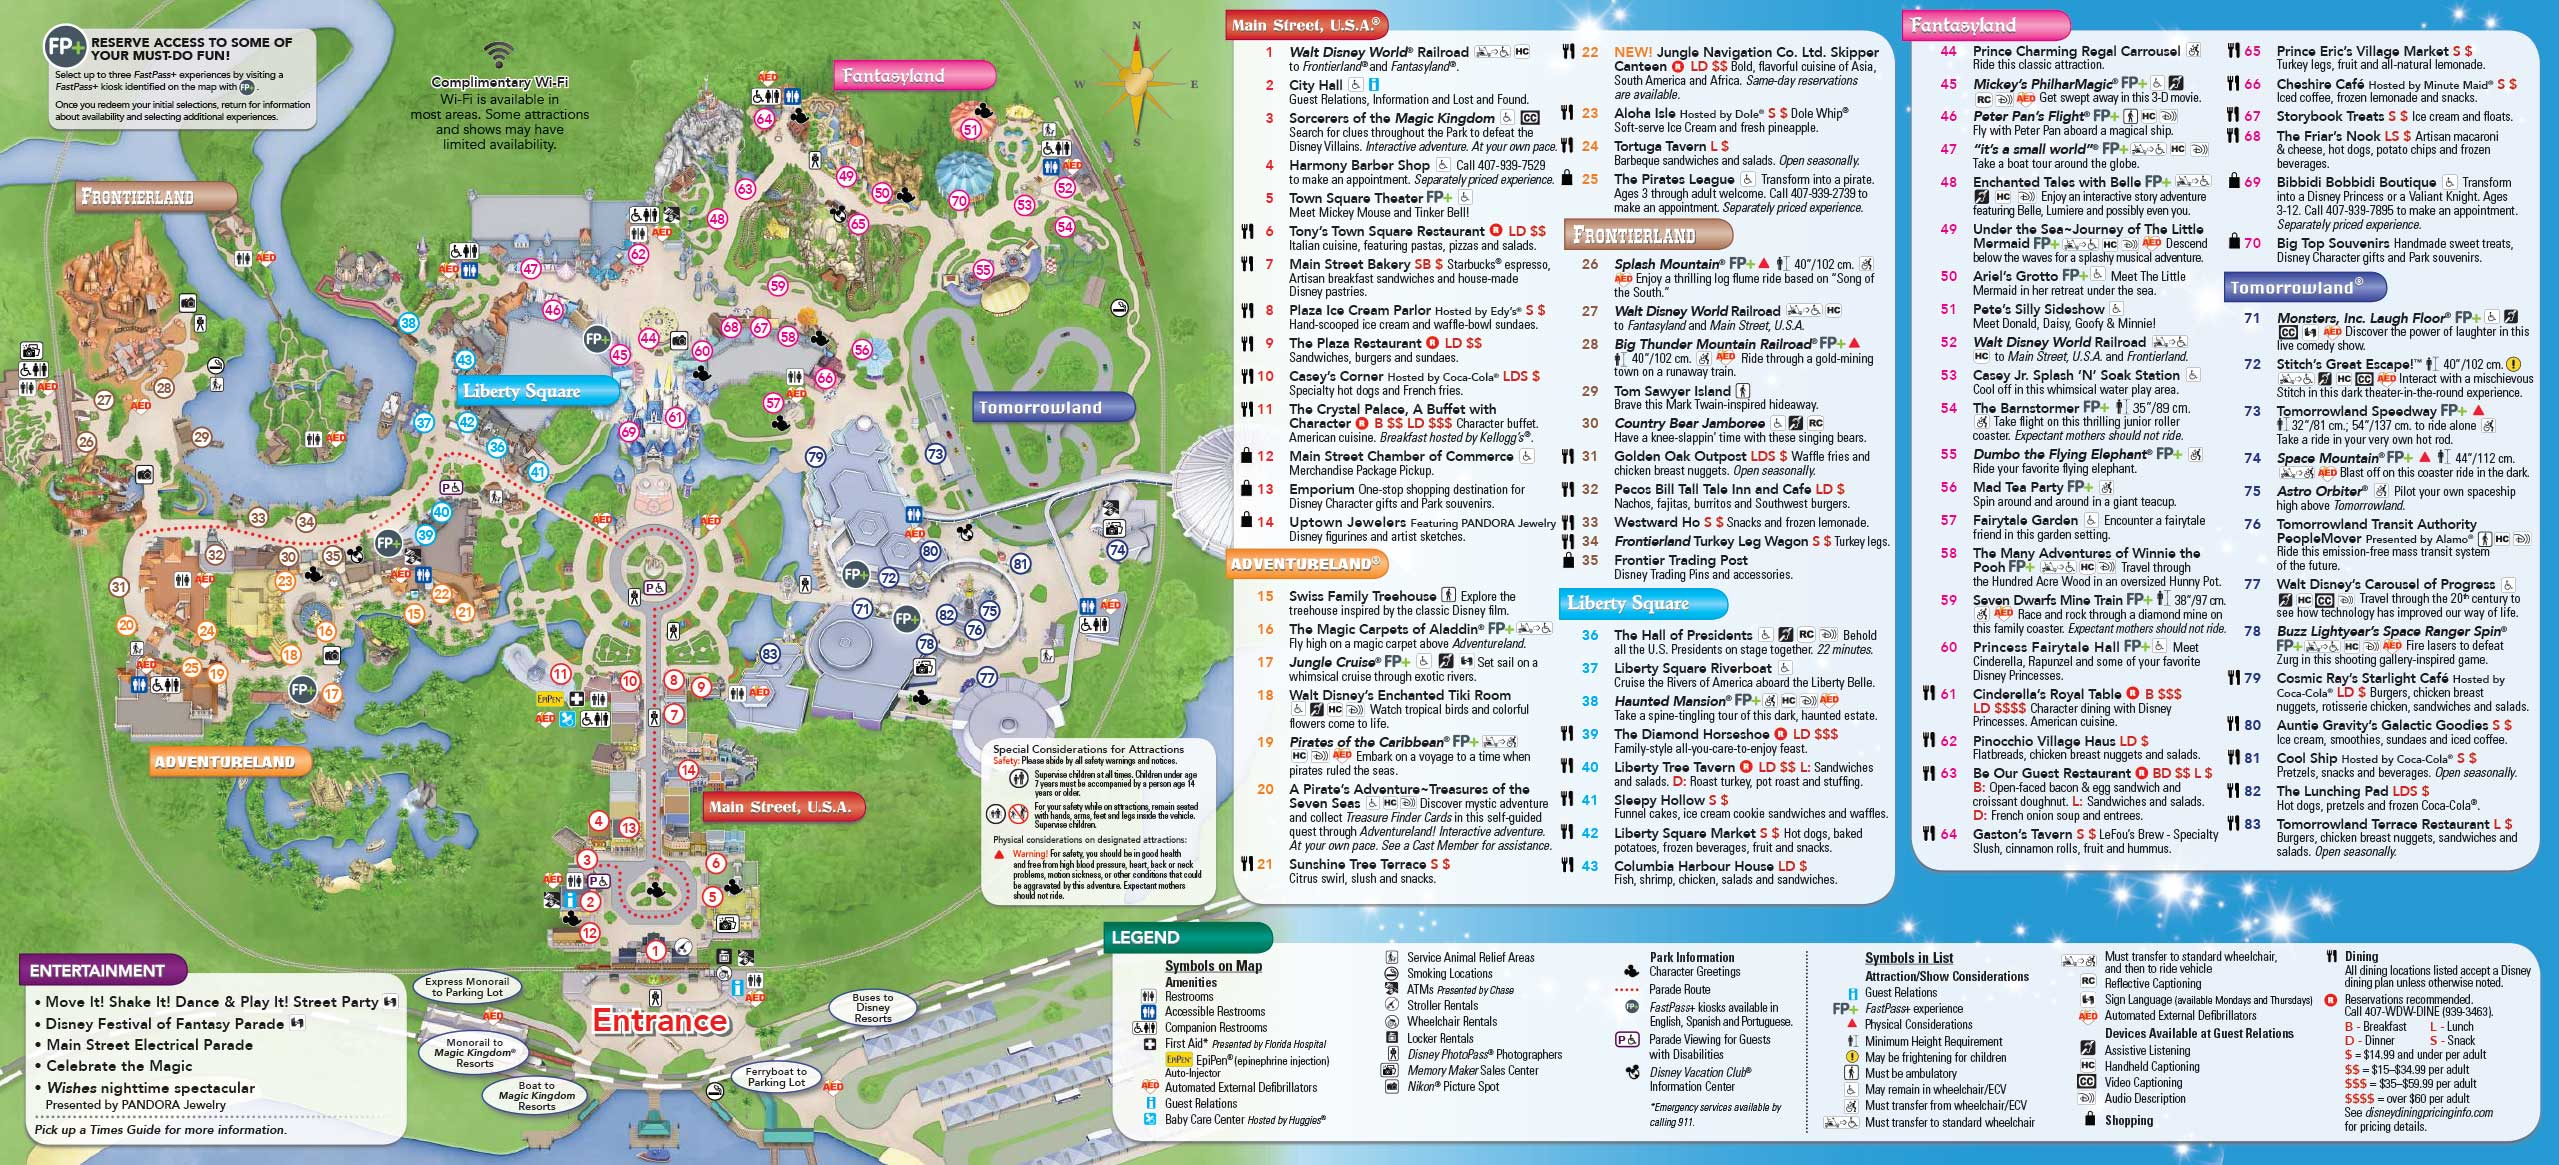 June 2016 Walt Disney World Park Maps - Photo 2 of 4 Magic Mountain Park Map on woodley park map, cedar point park map, red mountain park map, hurricane harbor valencia map, six flags park map, point reyes park map, six flags valencia map, san francisco park map, mammoth mountain park map, magic park california, copper mountain park map, six flags new england map, magic midway map, san diego park map,